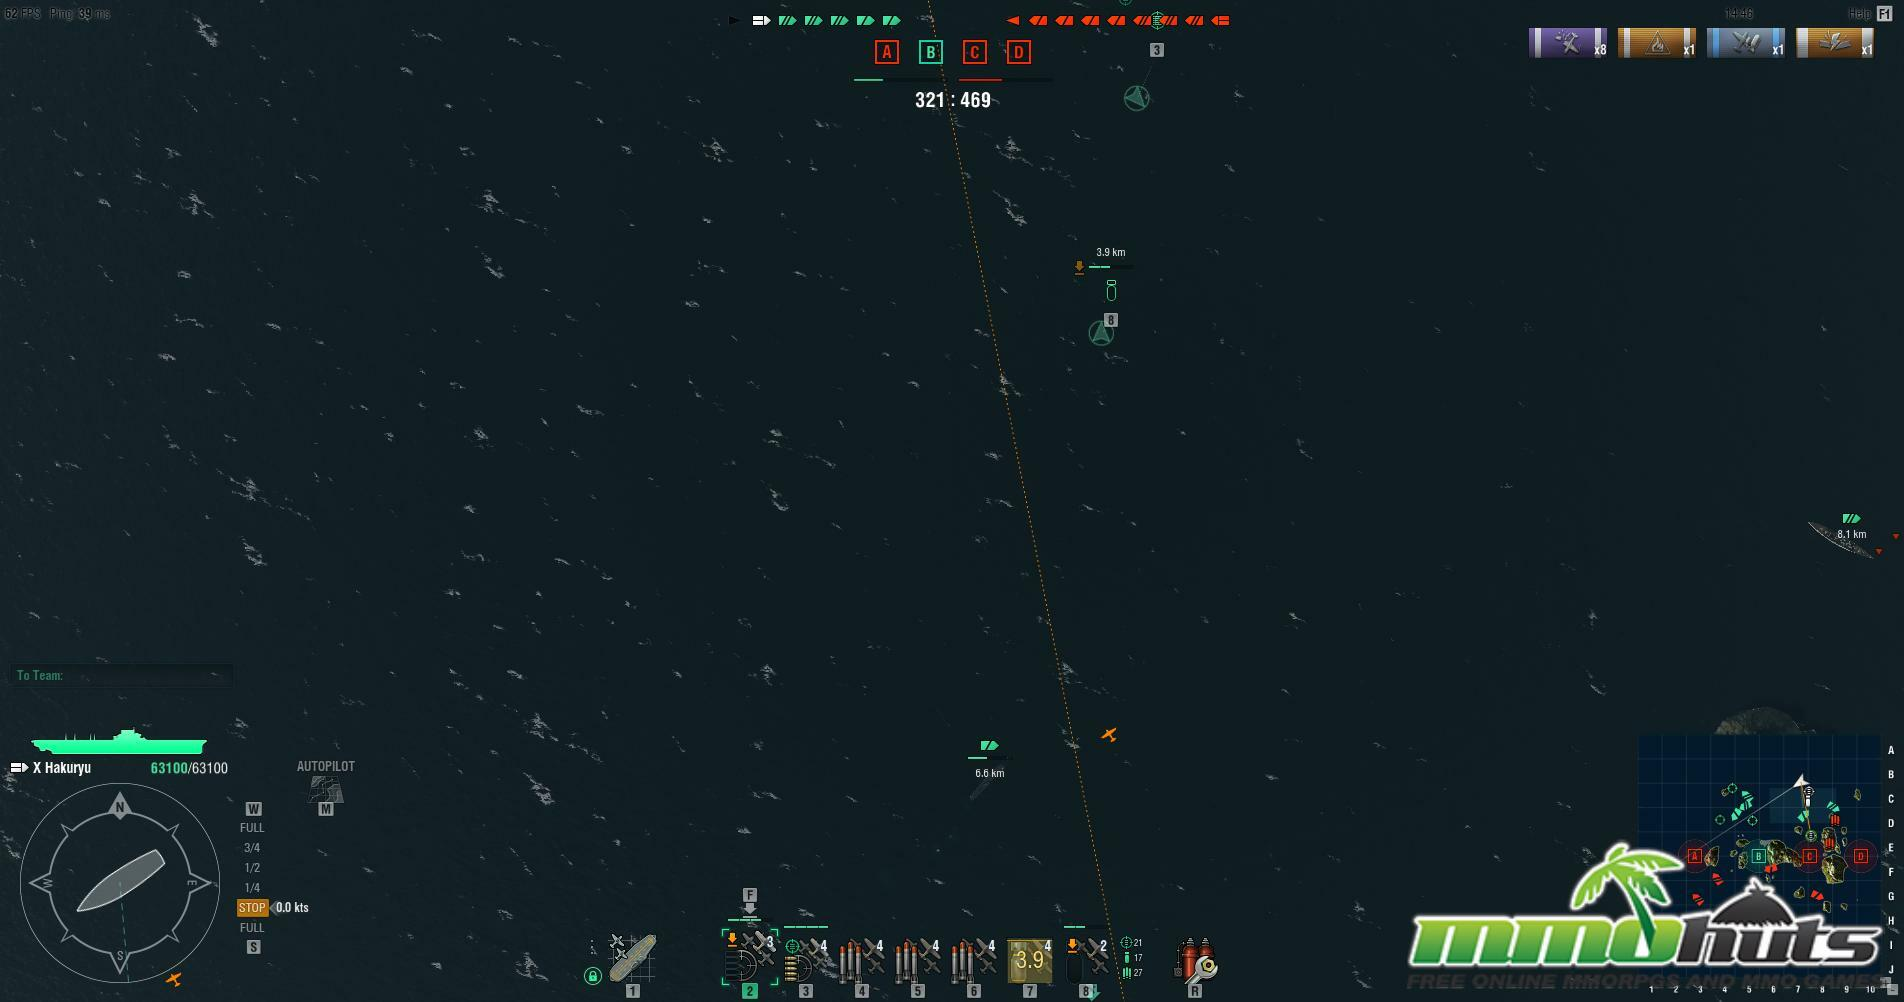 worldofwarships 2015-10-01 16-52-11-25